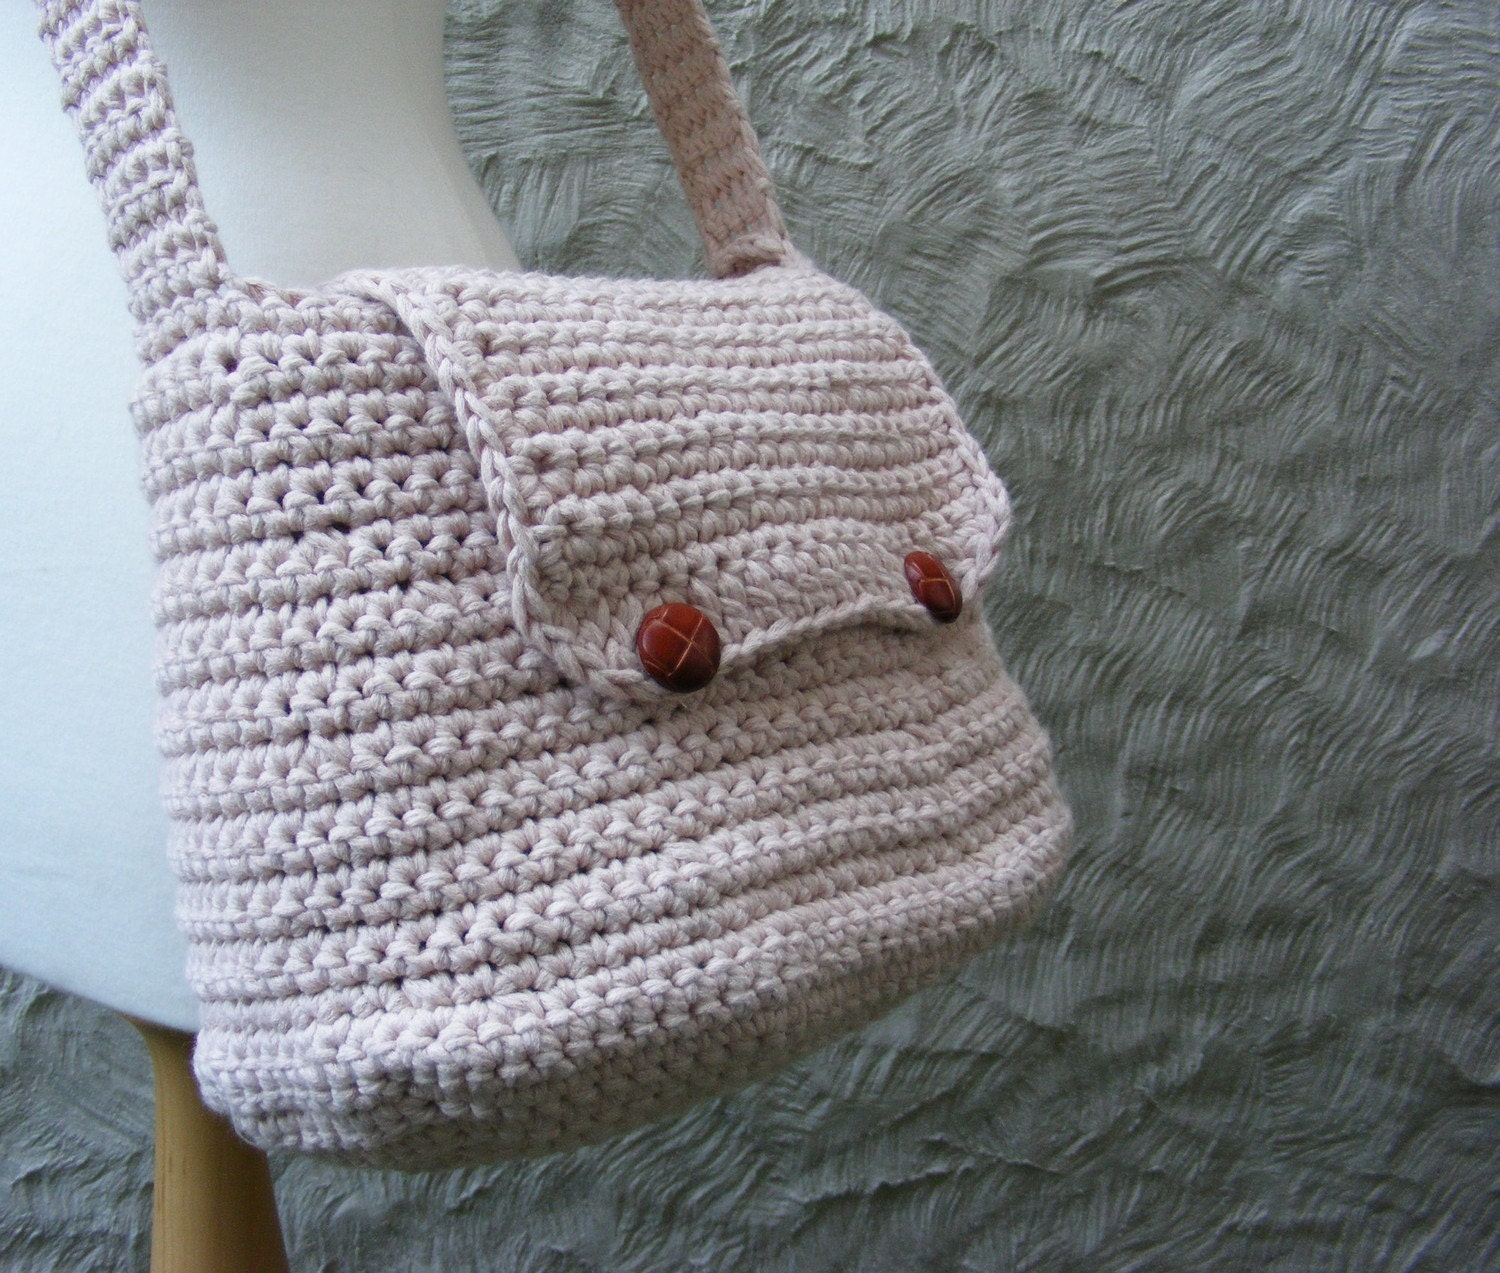 Crochet Simple Bag : Crochet Pattern Central - Free Bags, Totes and Purses Crochet